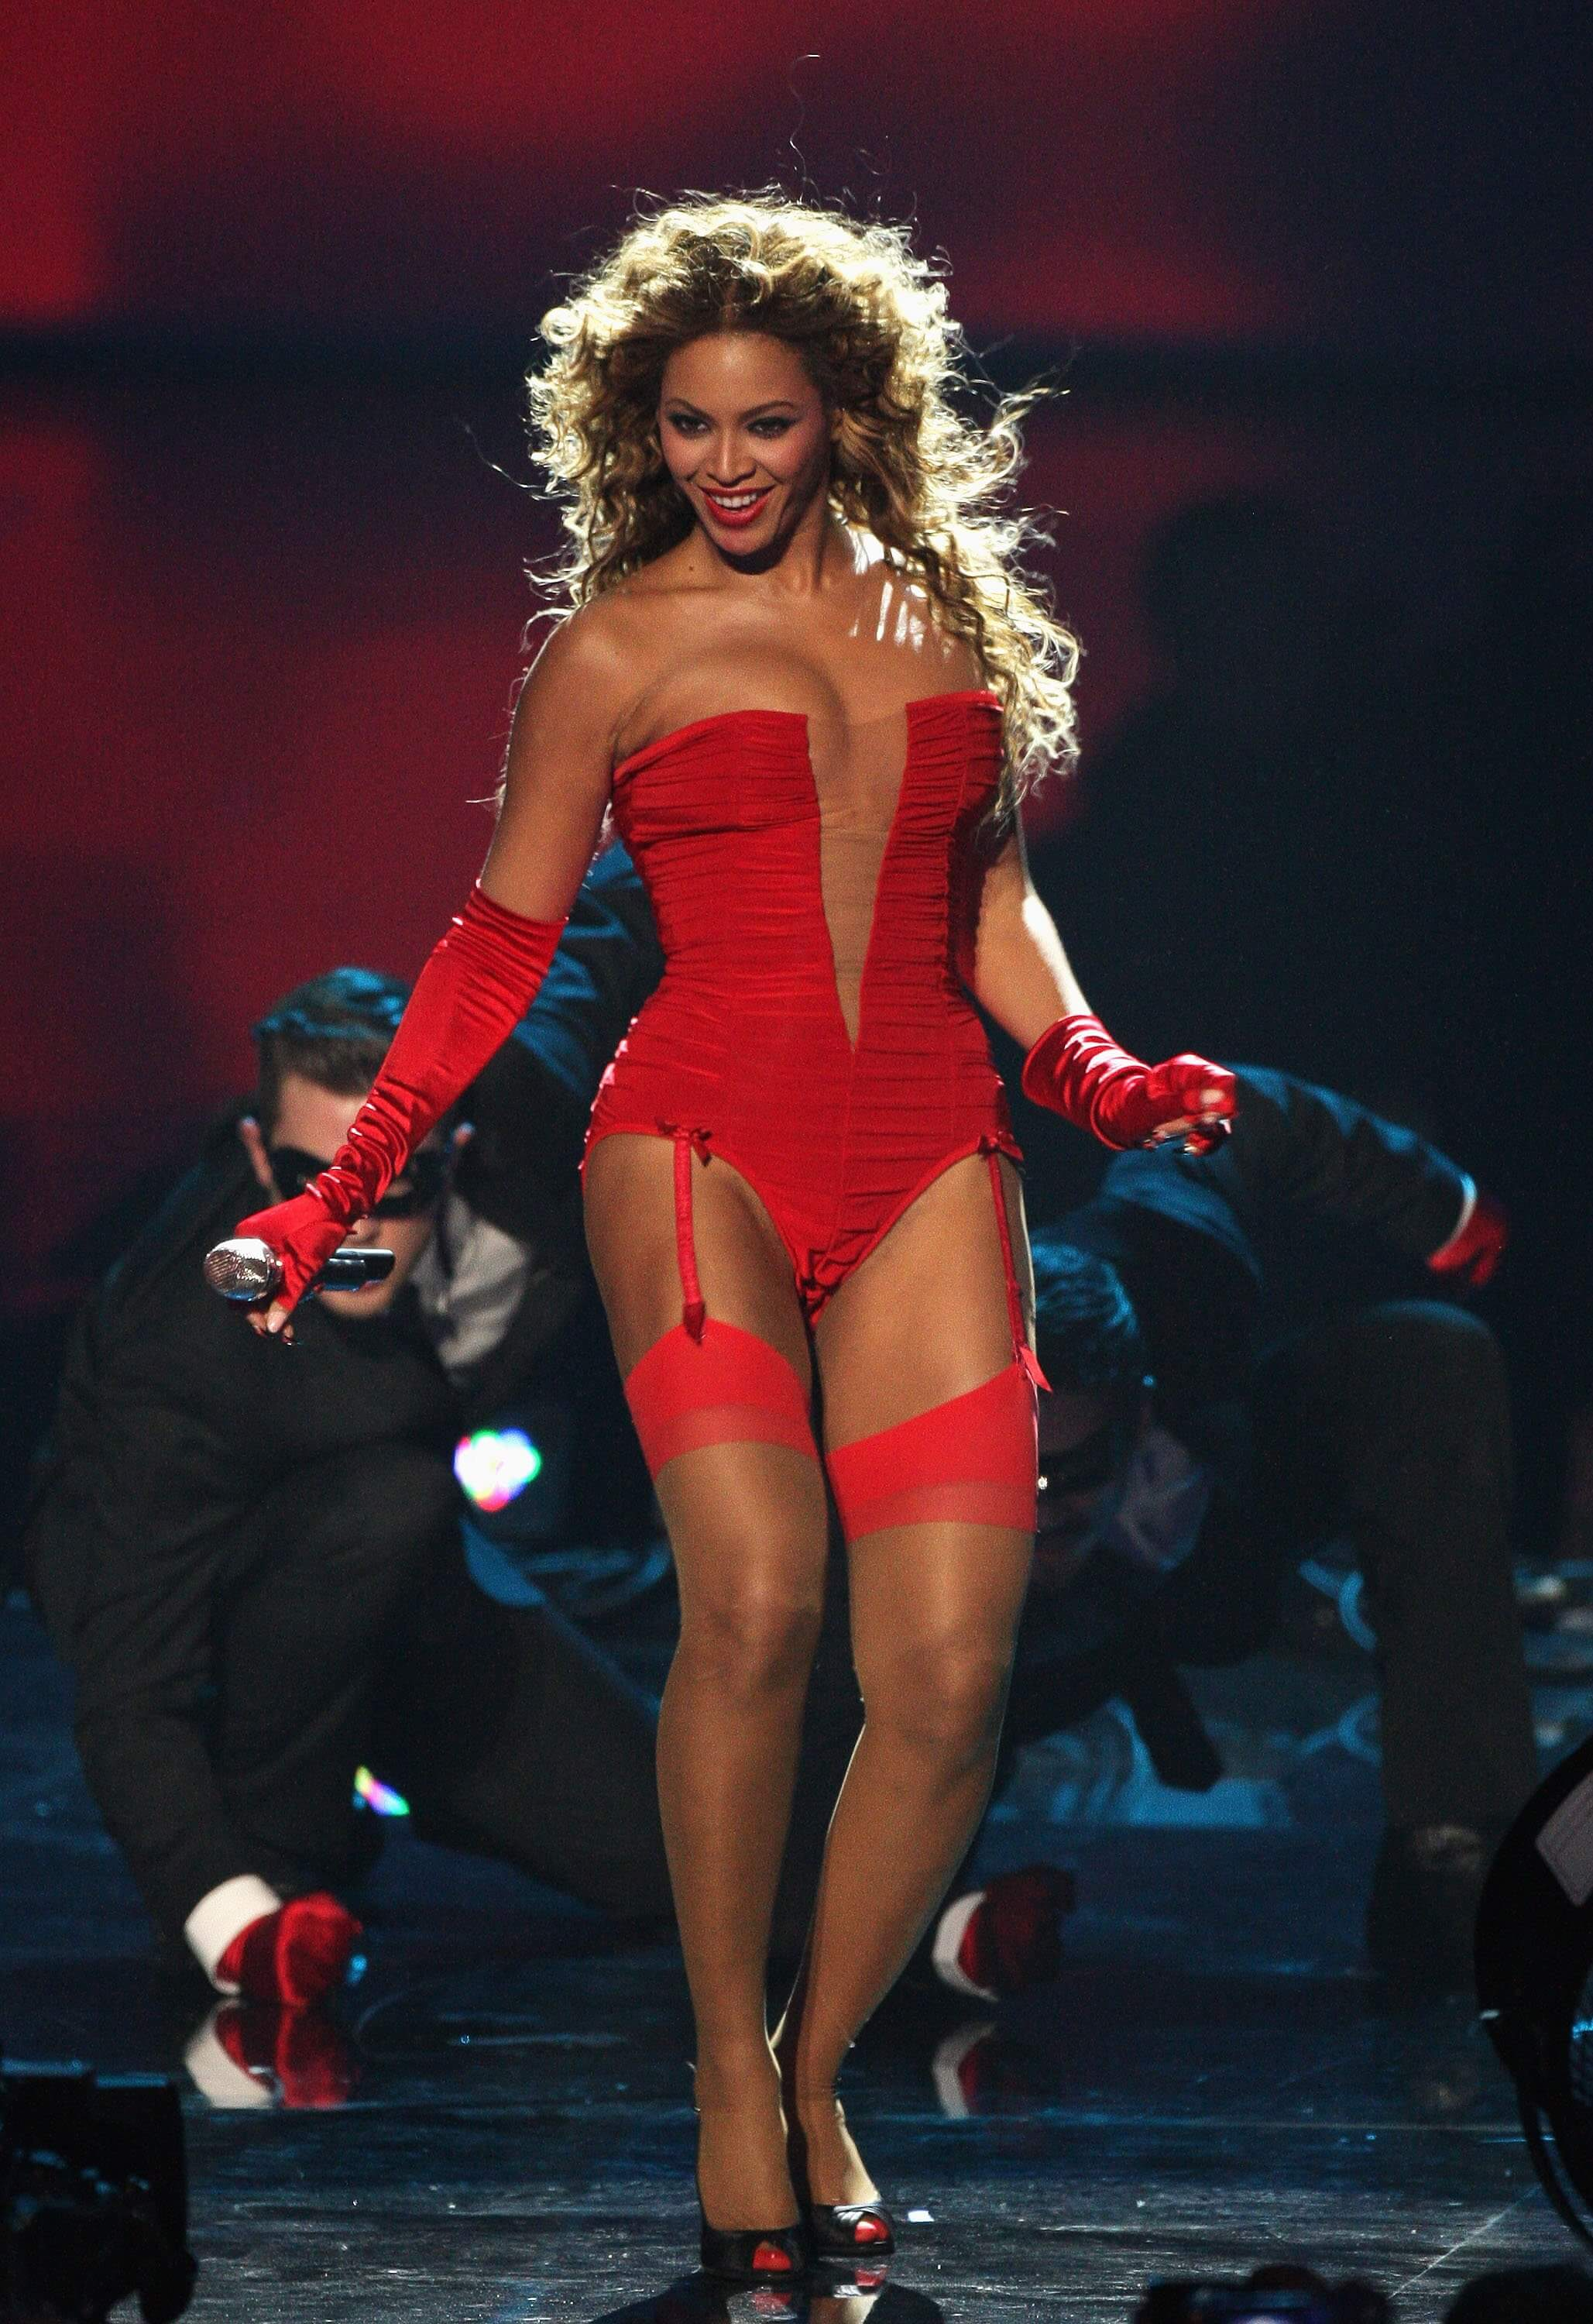 Beyonce awesome legs pic